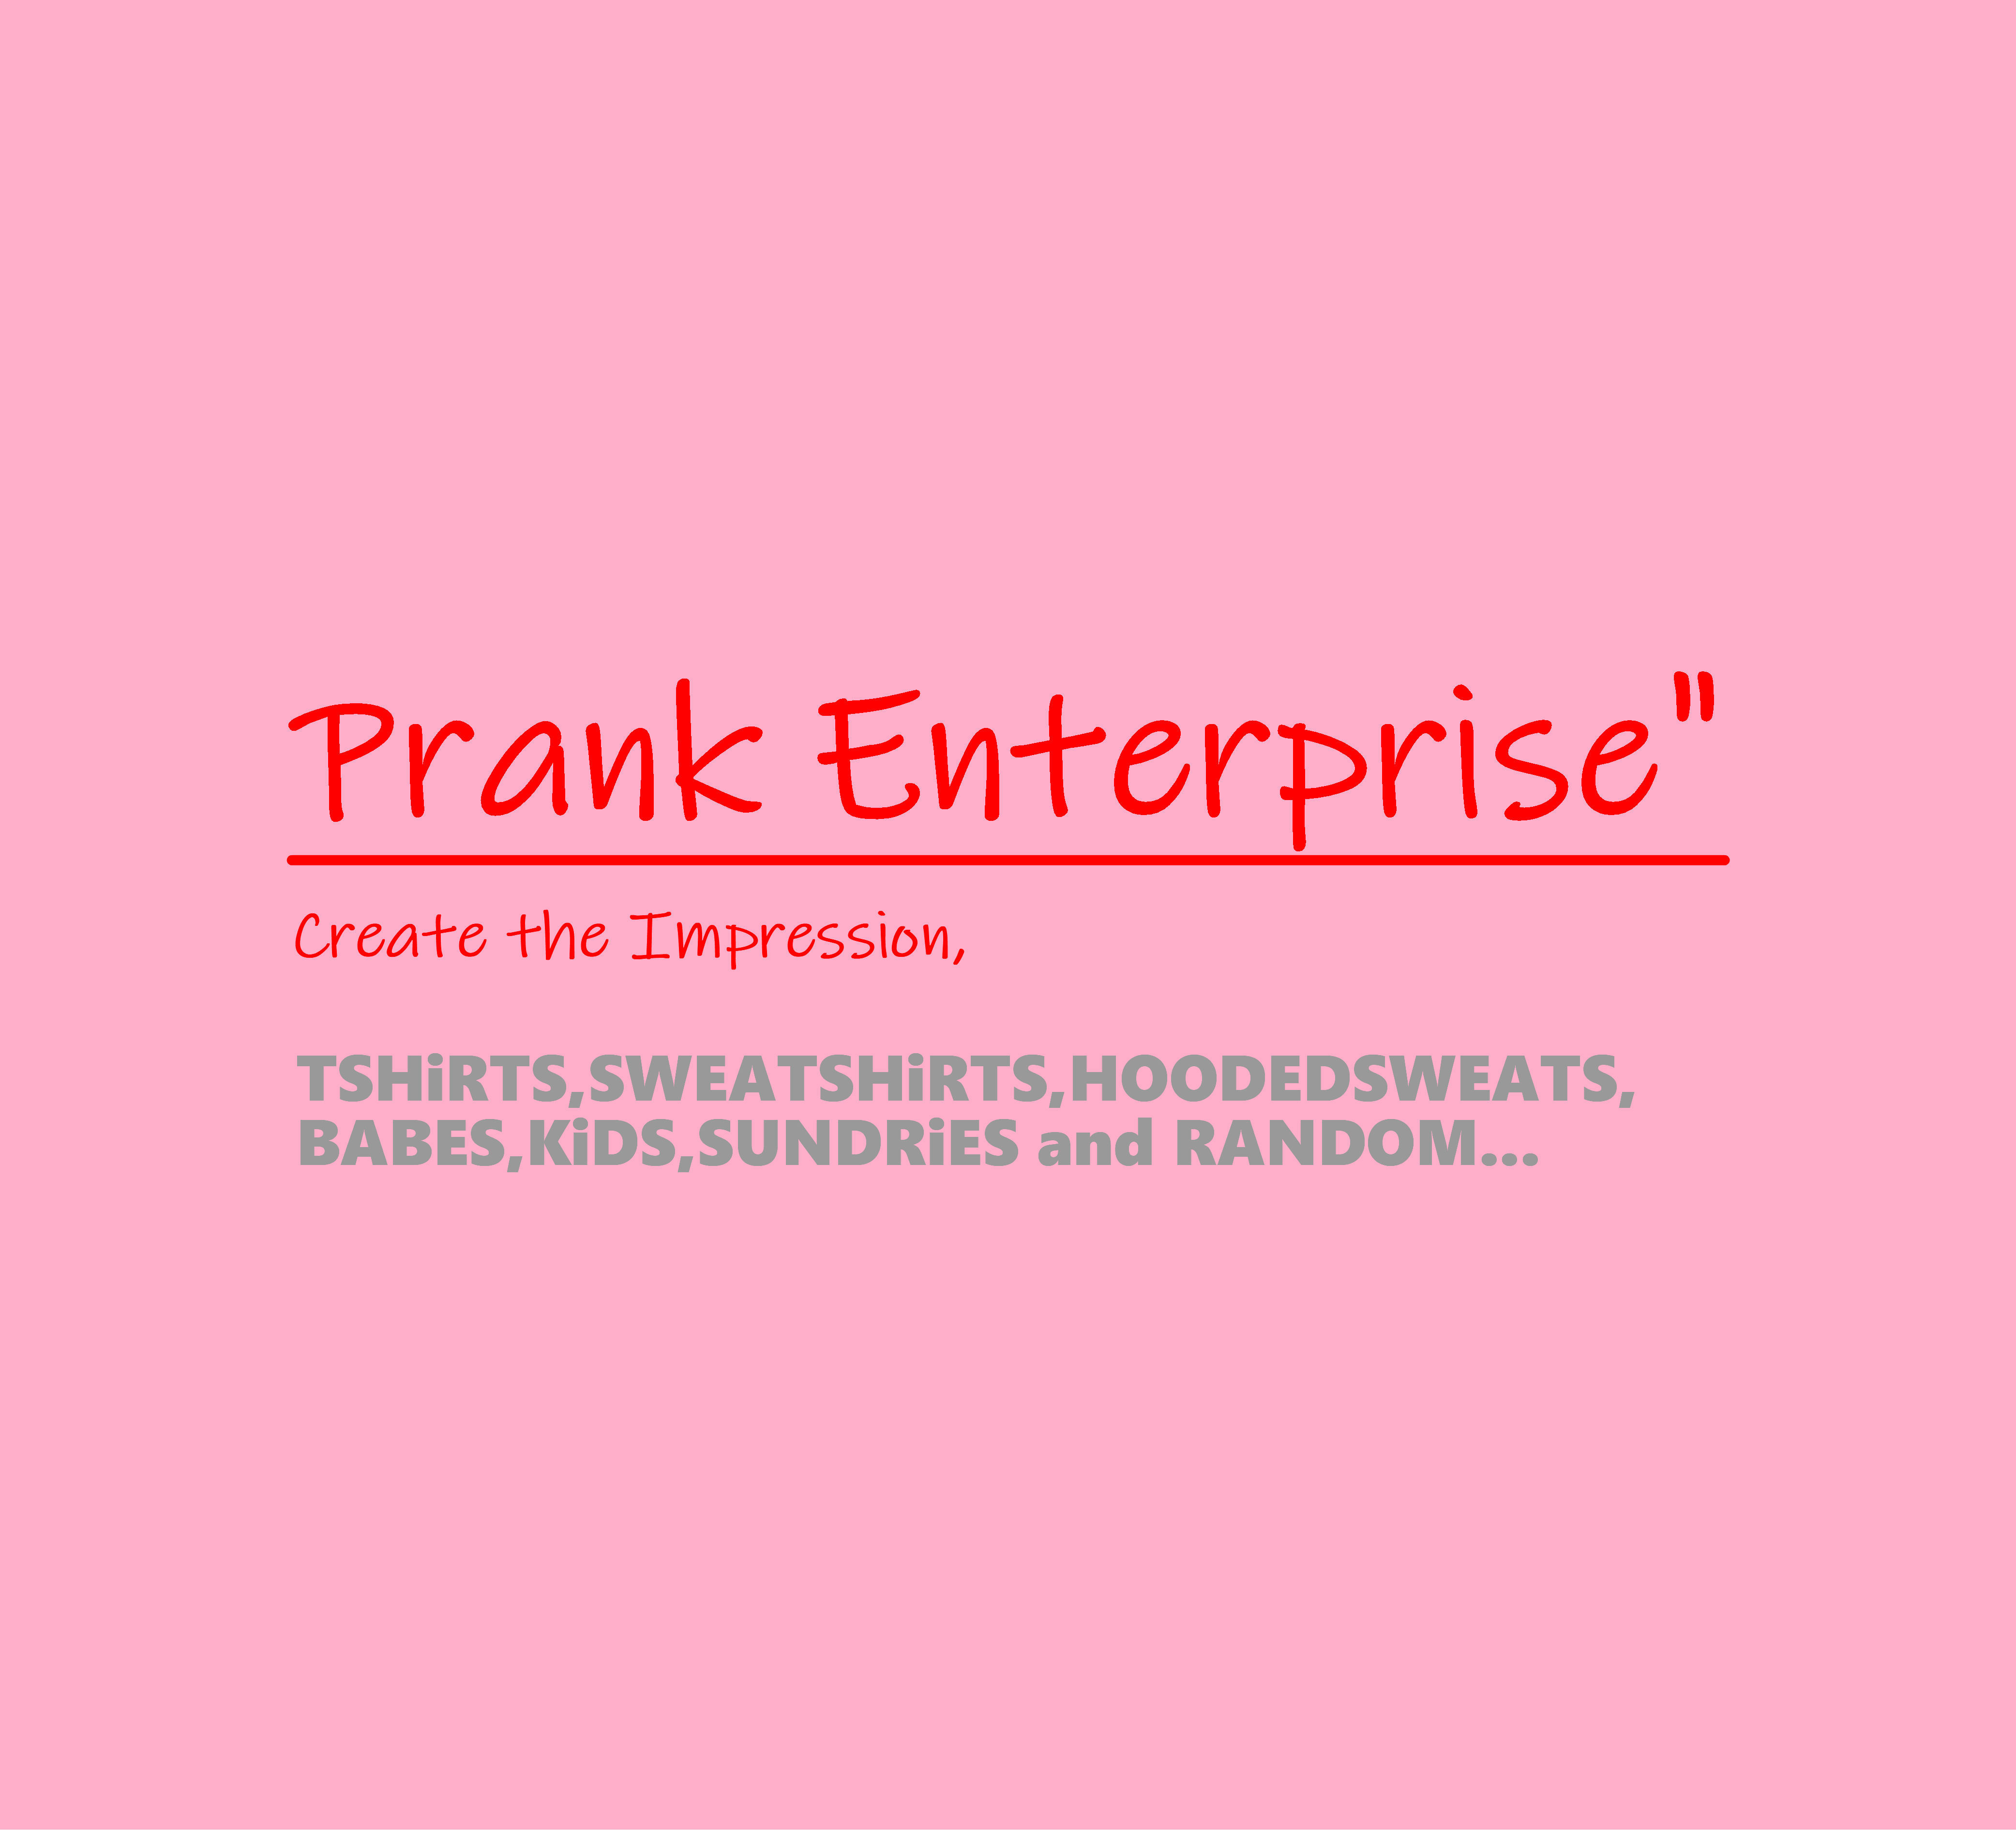 Prank Enterprise""